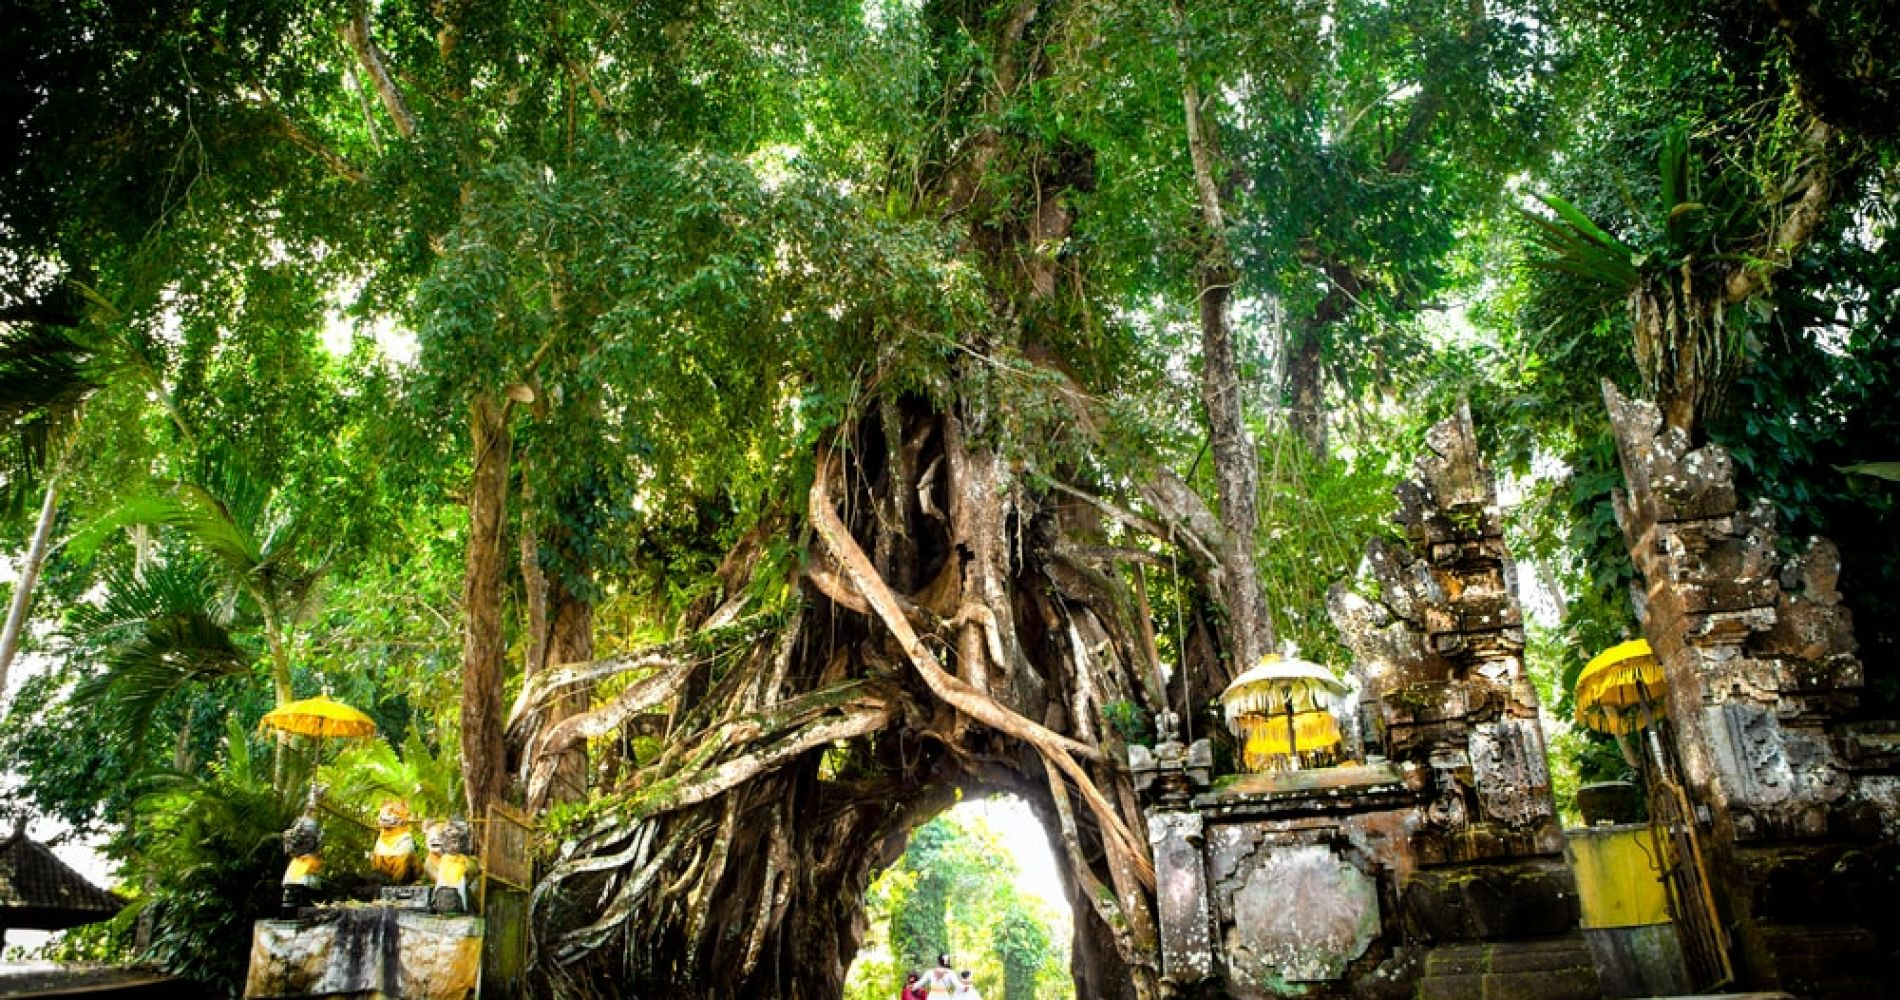 Drive (or no) through a hole in a tree - Bunut Bolong Tree in Bali